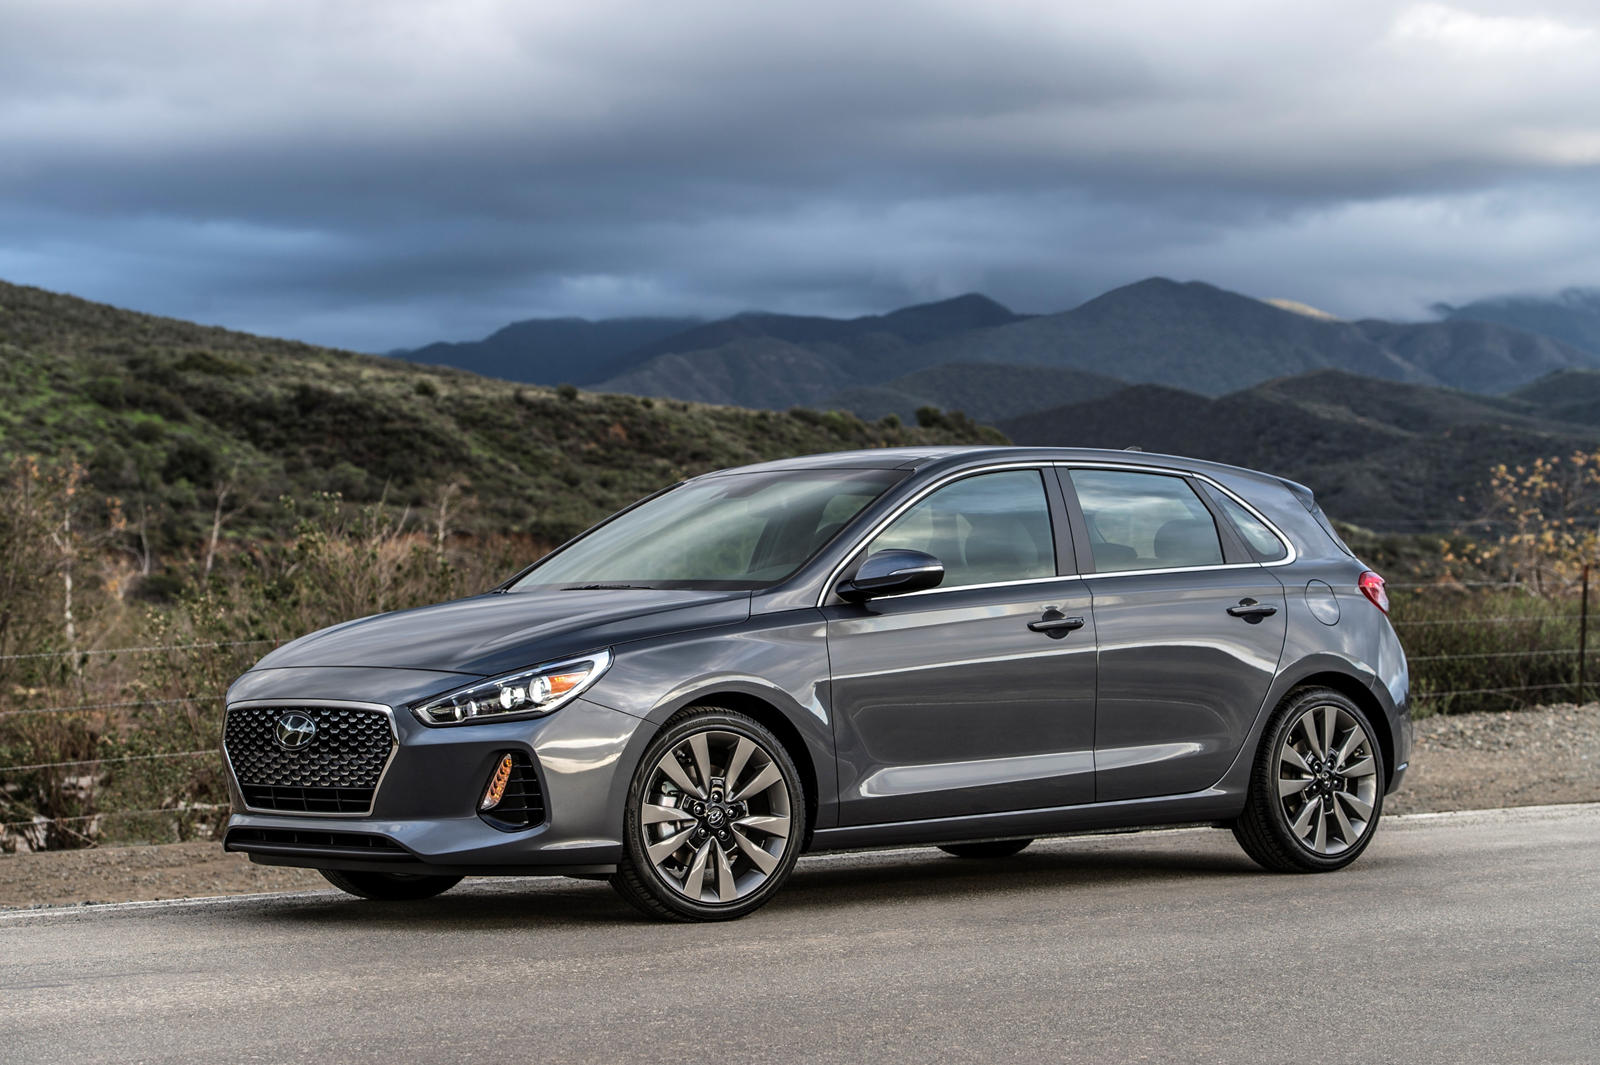 2020 hyundai elantra gt review trims specs price new interior features exterior design and specifications carbuzz carbuzz